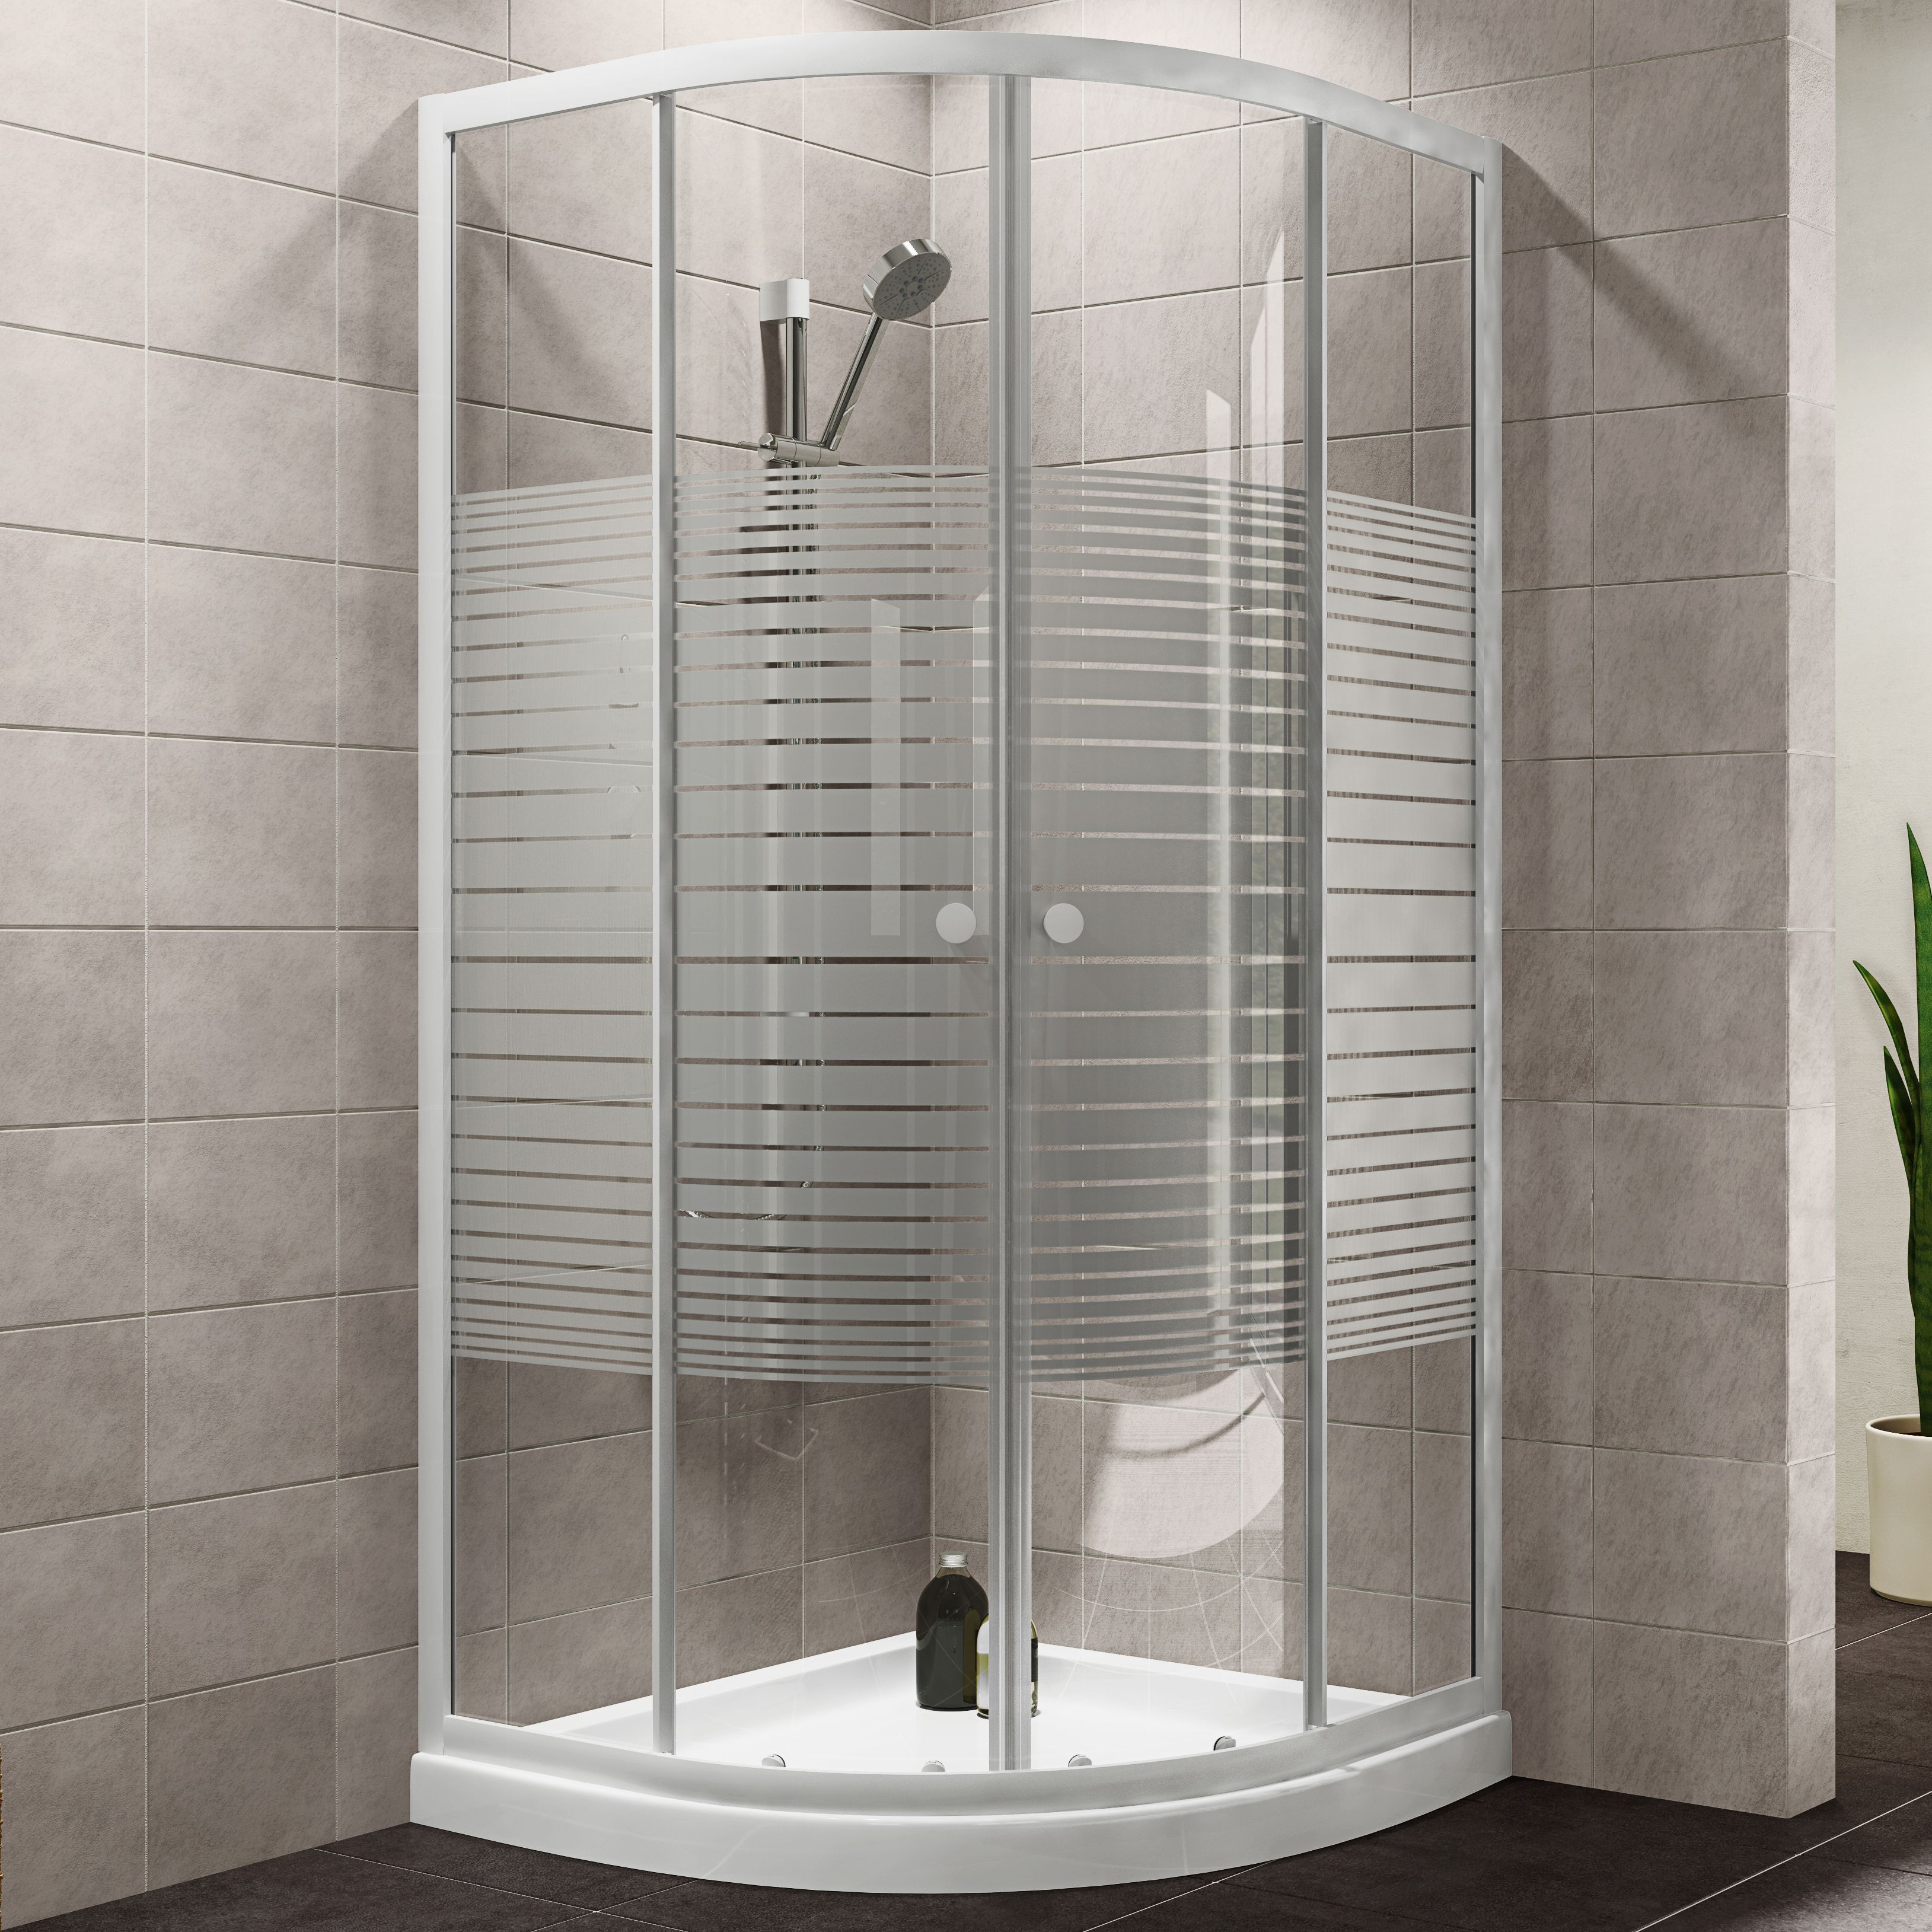 Plumbsure quadrant shower enclosure tray waste pack B q bathroom design service